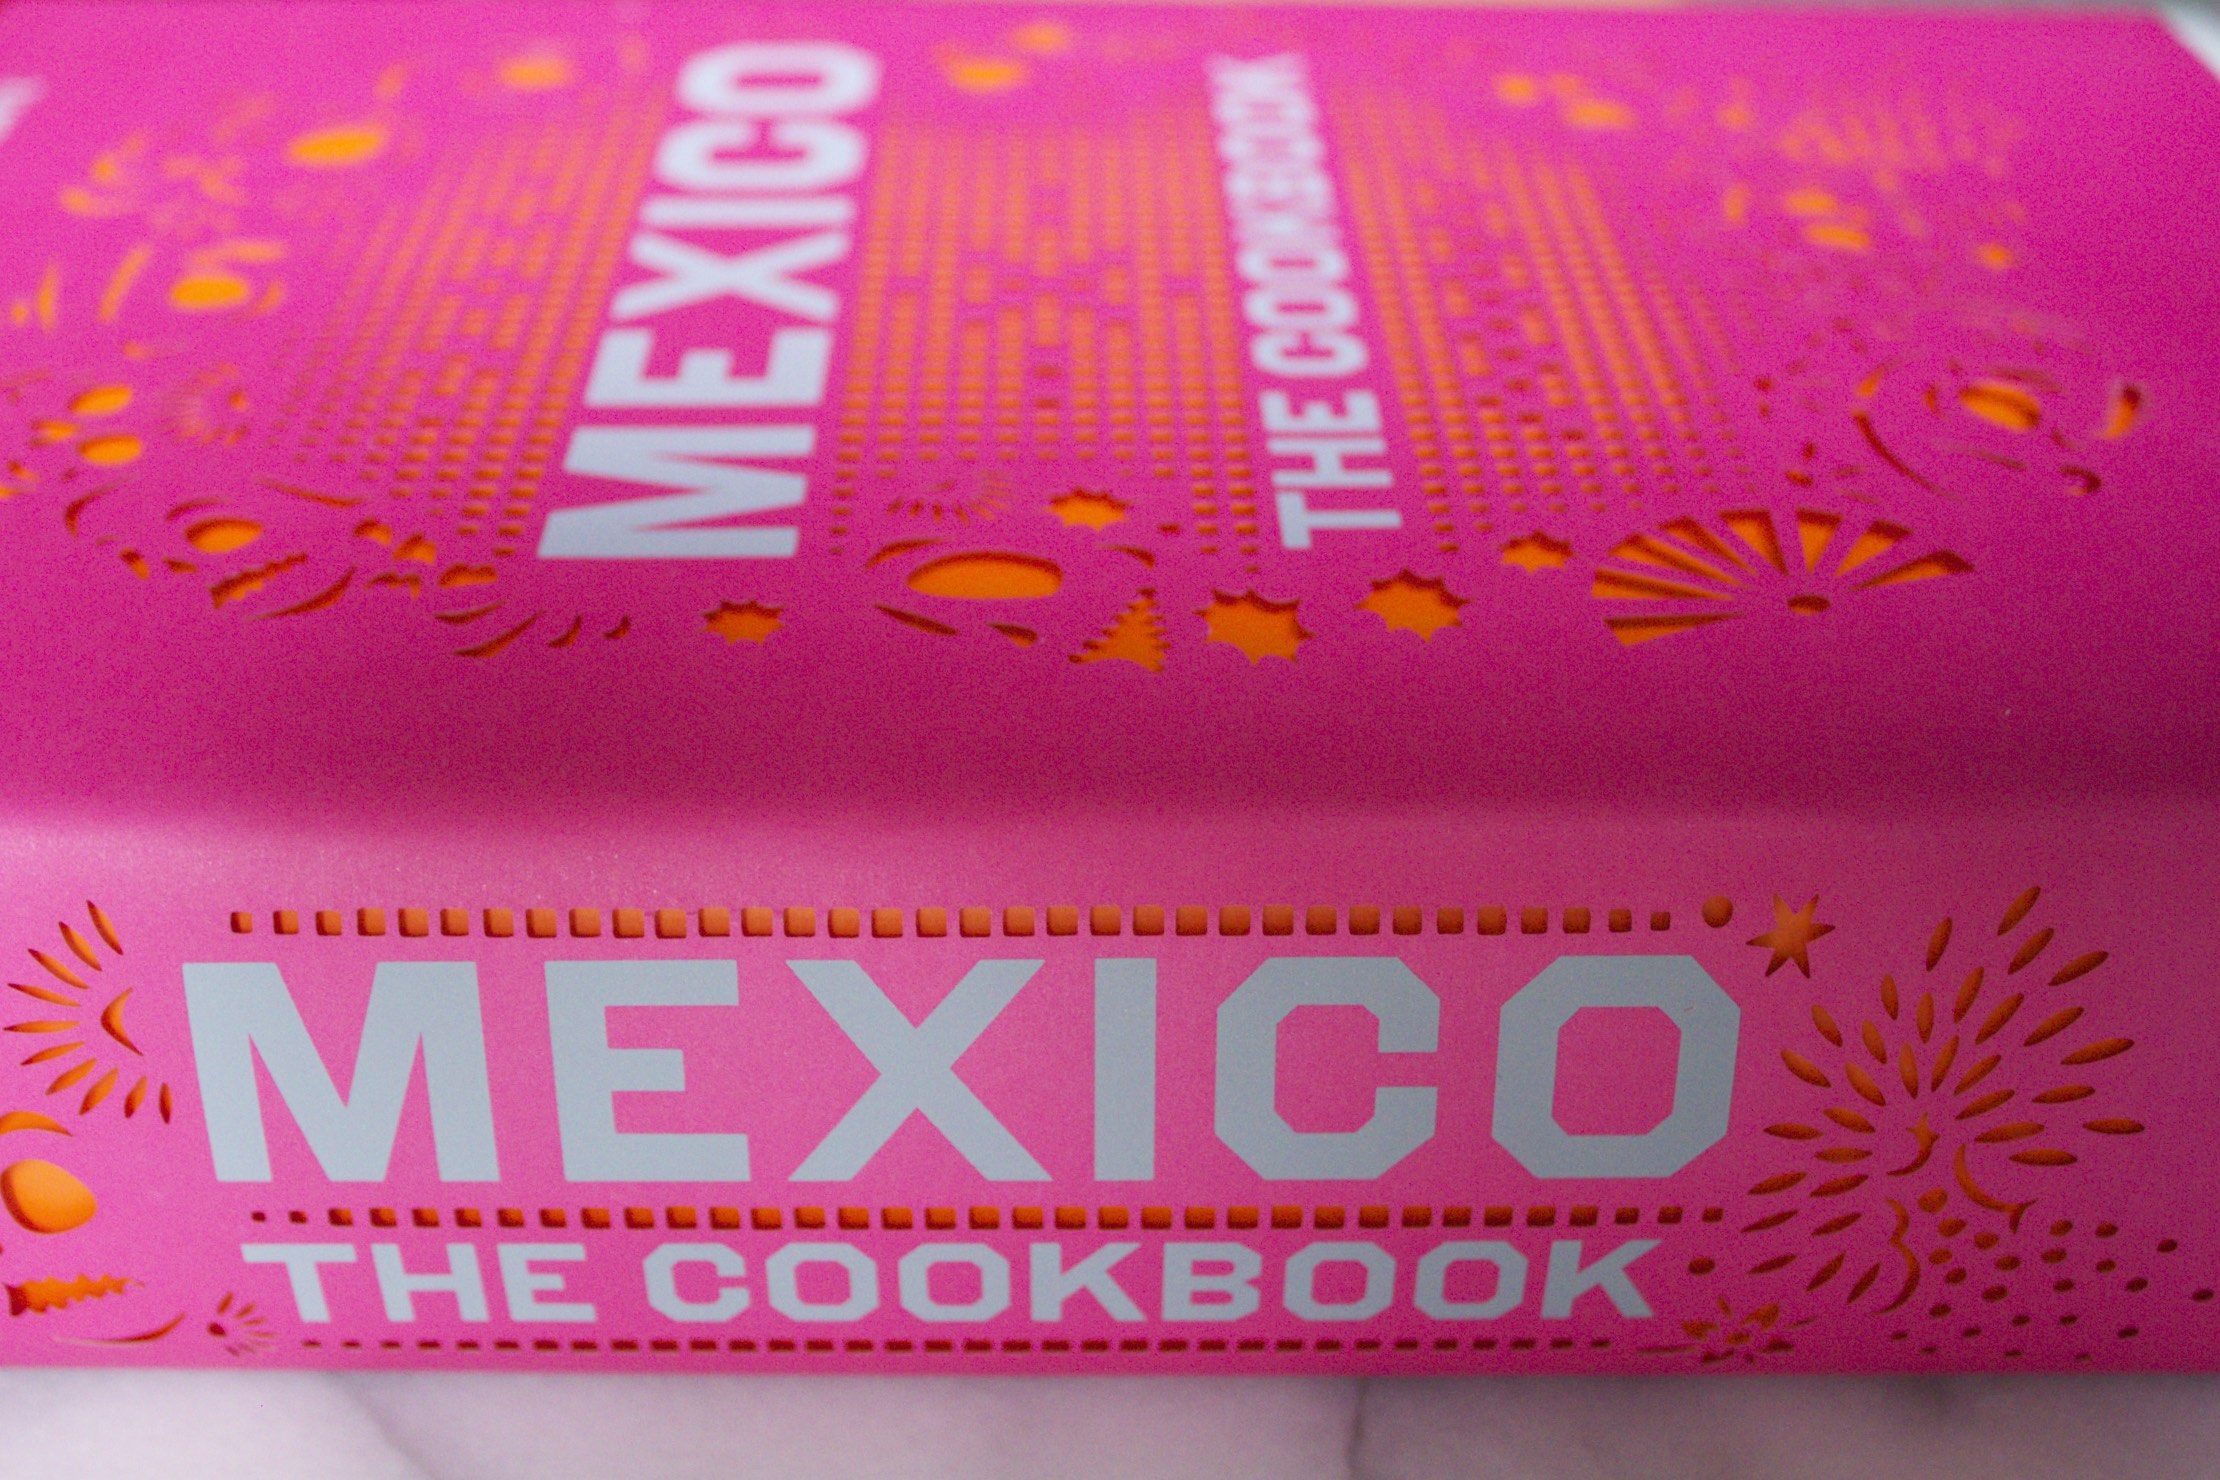 Taking on Mexico: The Cookbook | hungry sofia